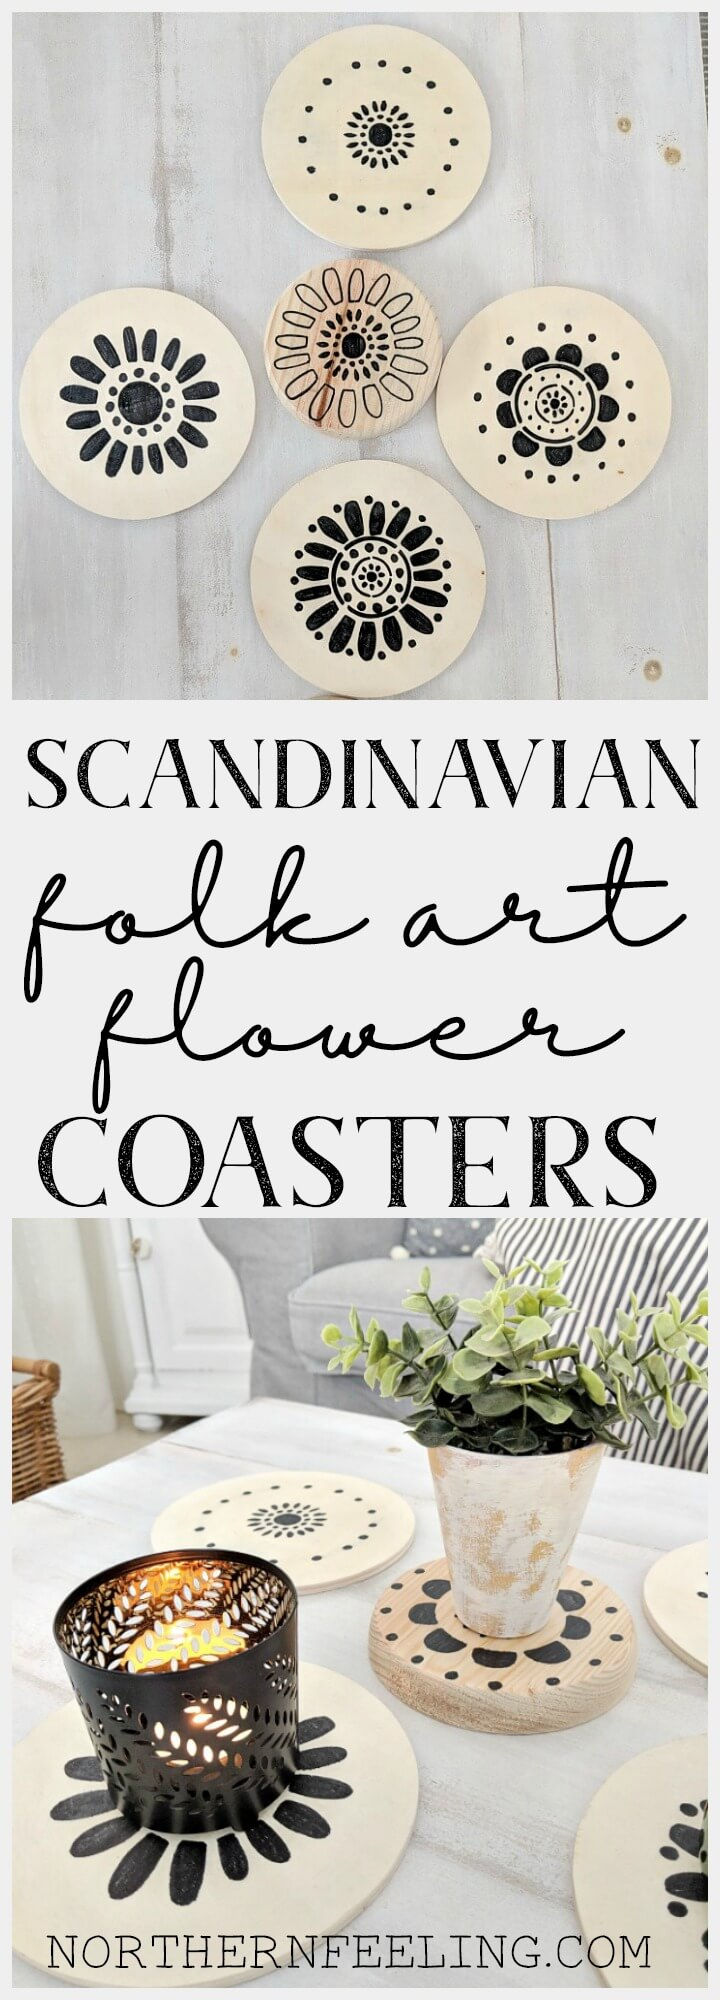 Scandinavian Folk Art Flower Stencil Coasters // northernfeeling.com